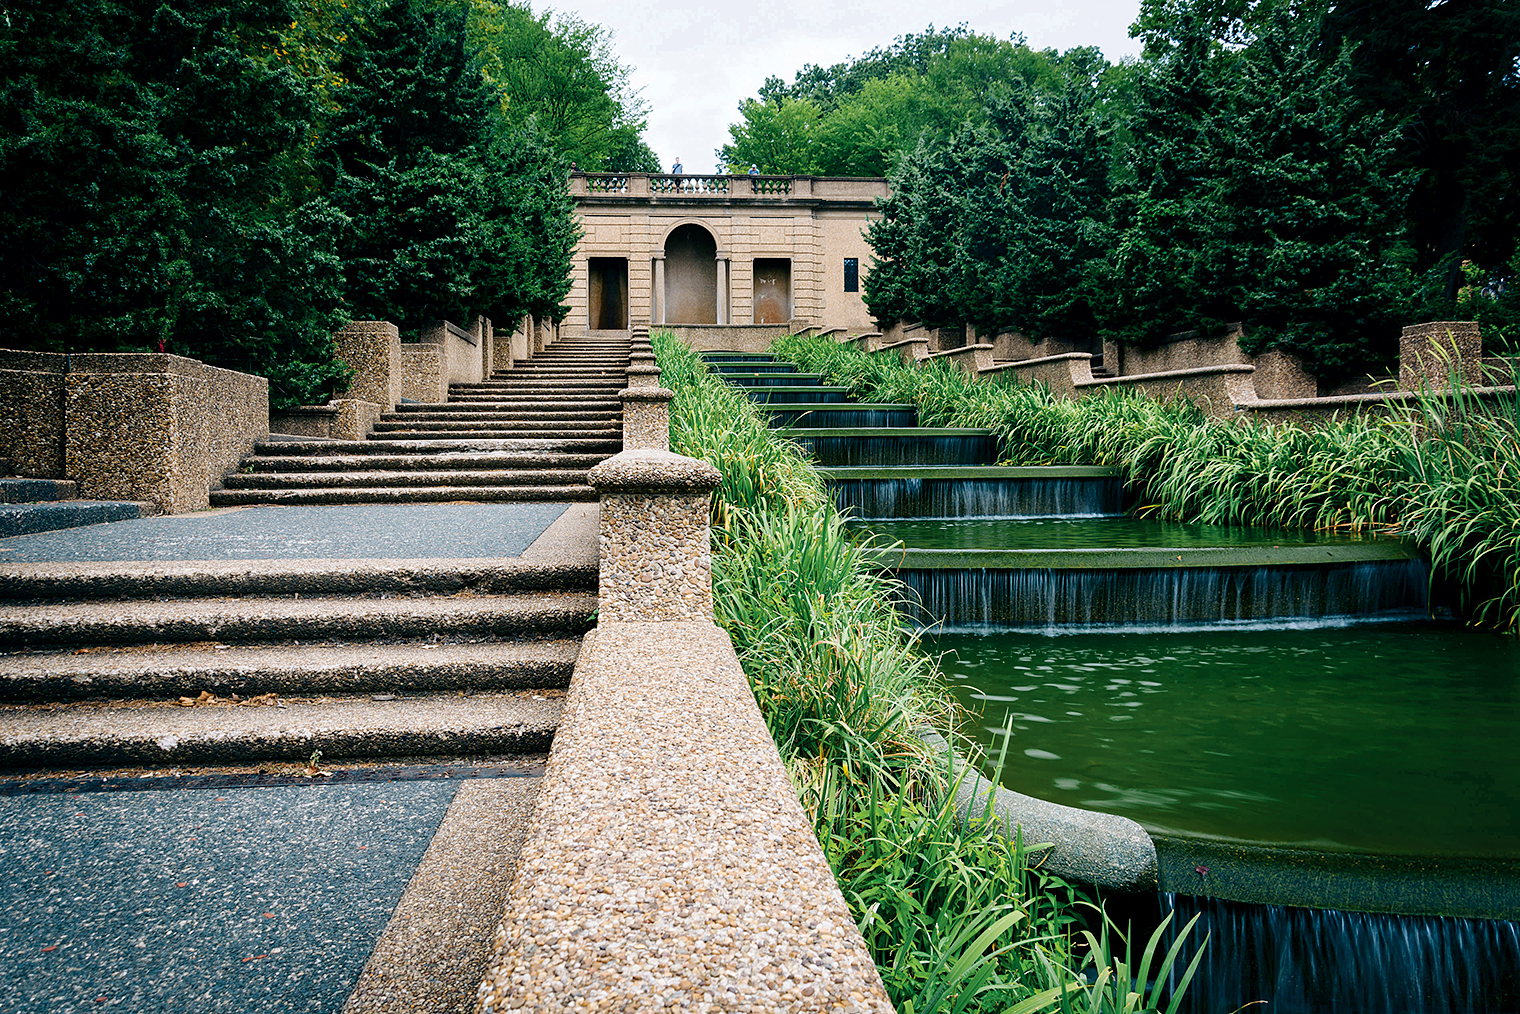 1,000-yard stair: Meridian Hill Park, built for speed. Photograph by Jon Bilous/Alamy.